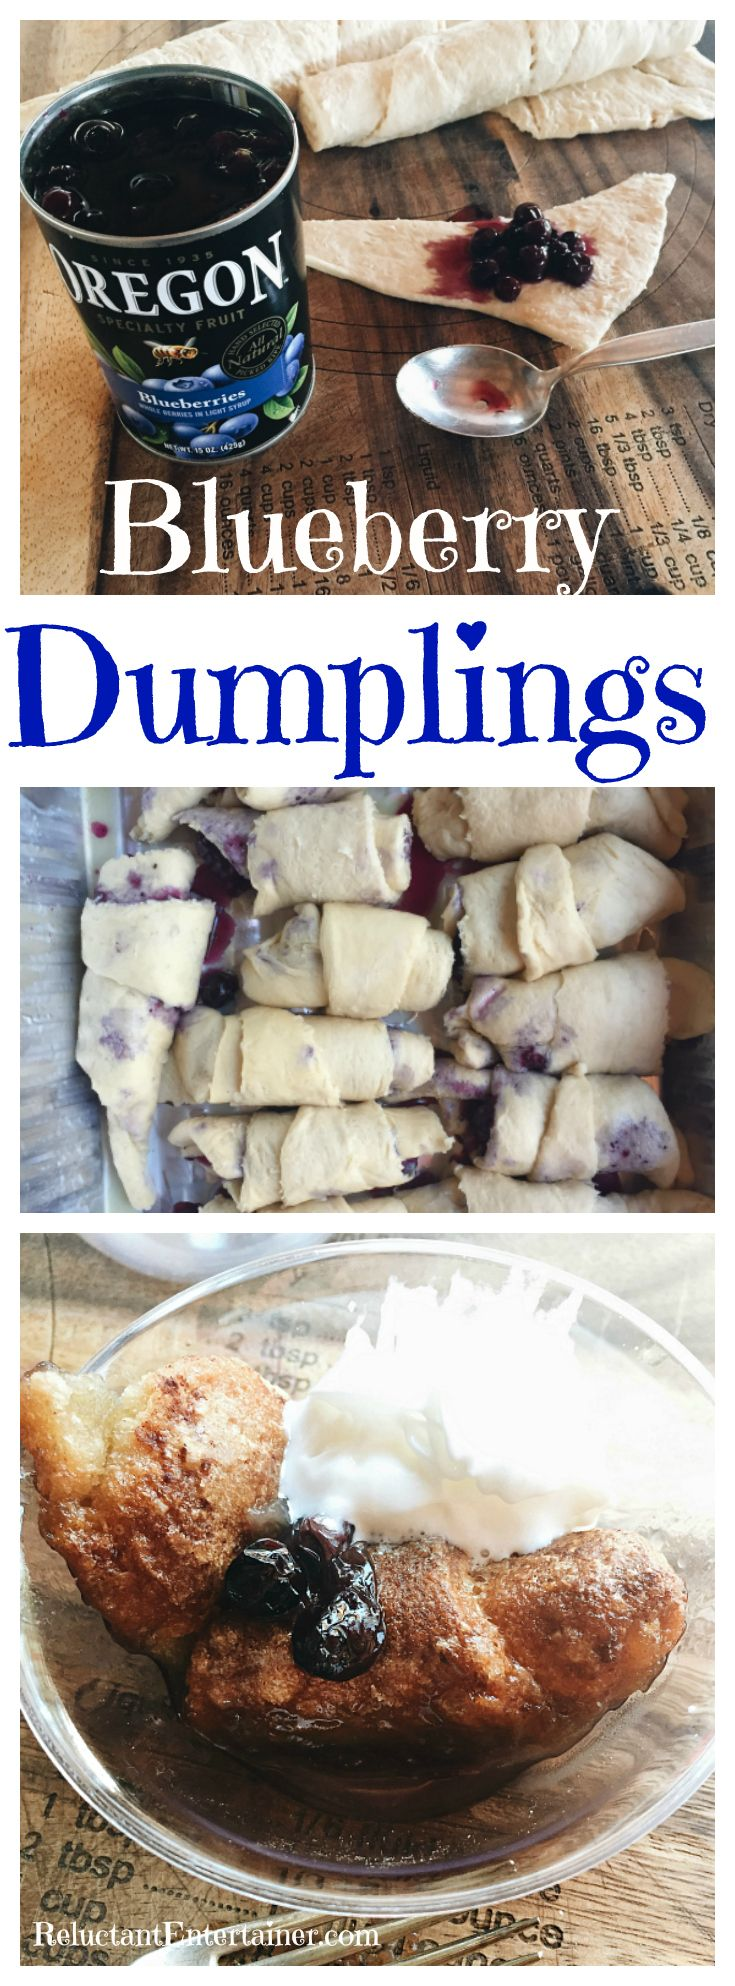 Blueberry Dumplings Recipe at ReluctantEntertainer.com